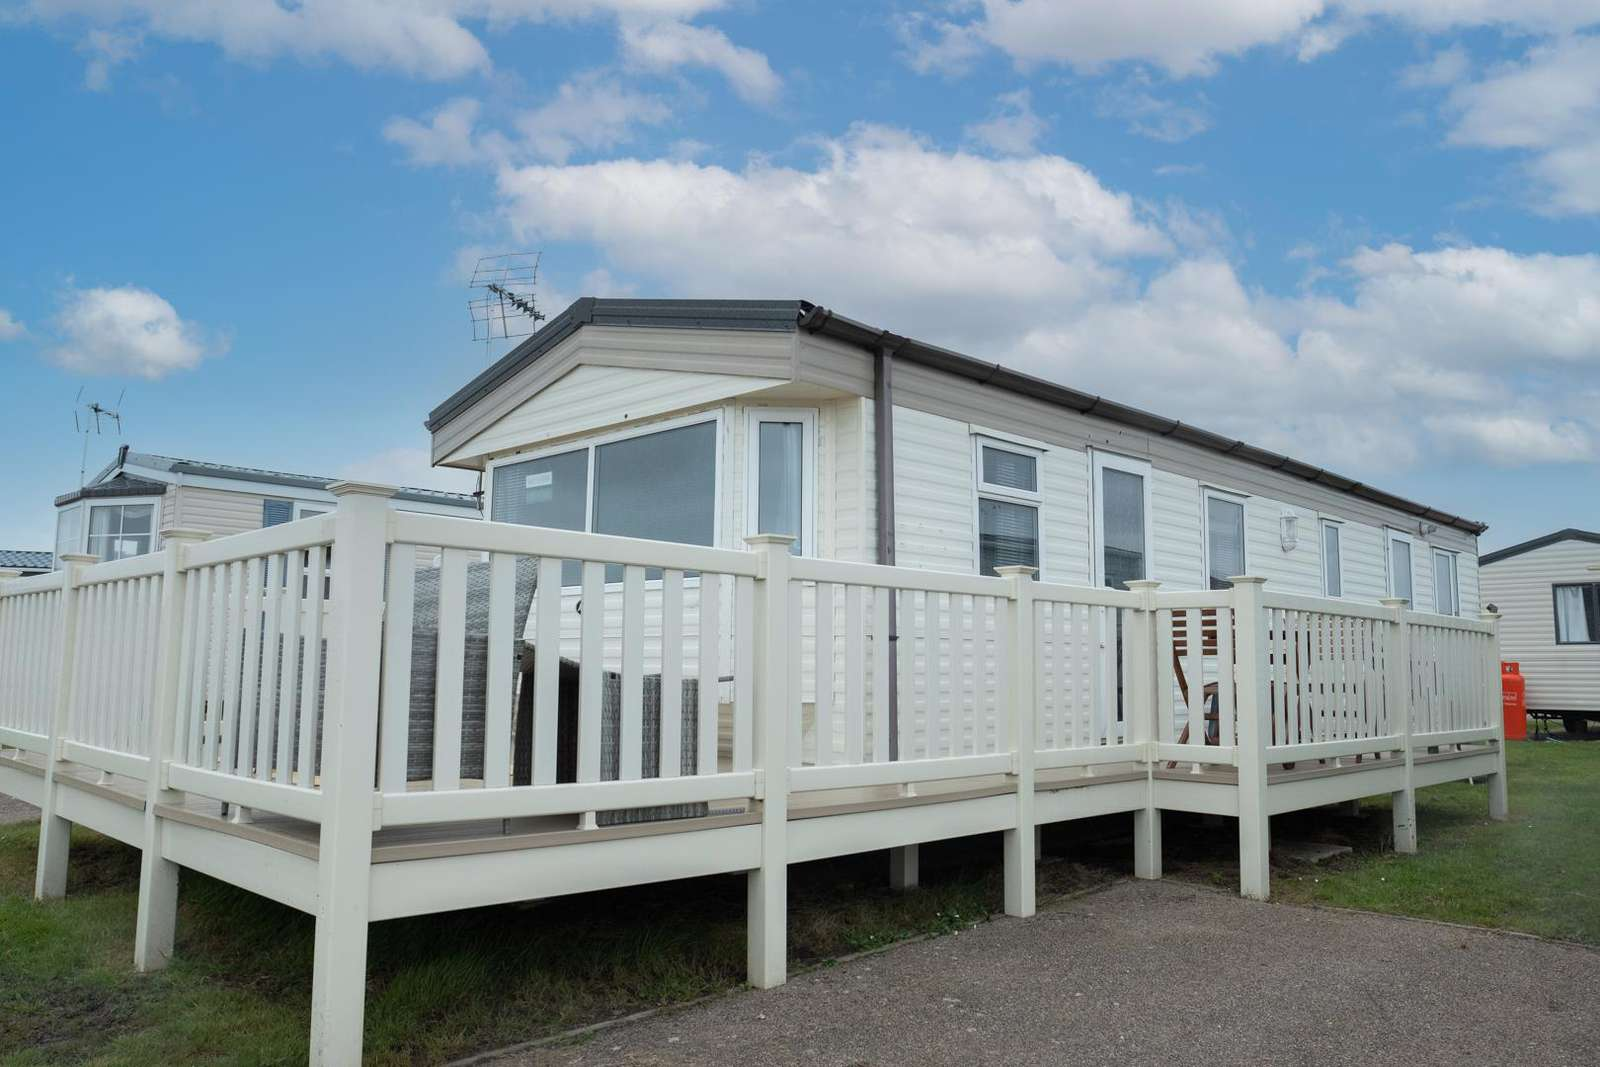 29012BW – Backwaters, 2 bed, 6 berth caravan with decking. Ruby rated. - property